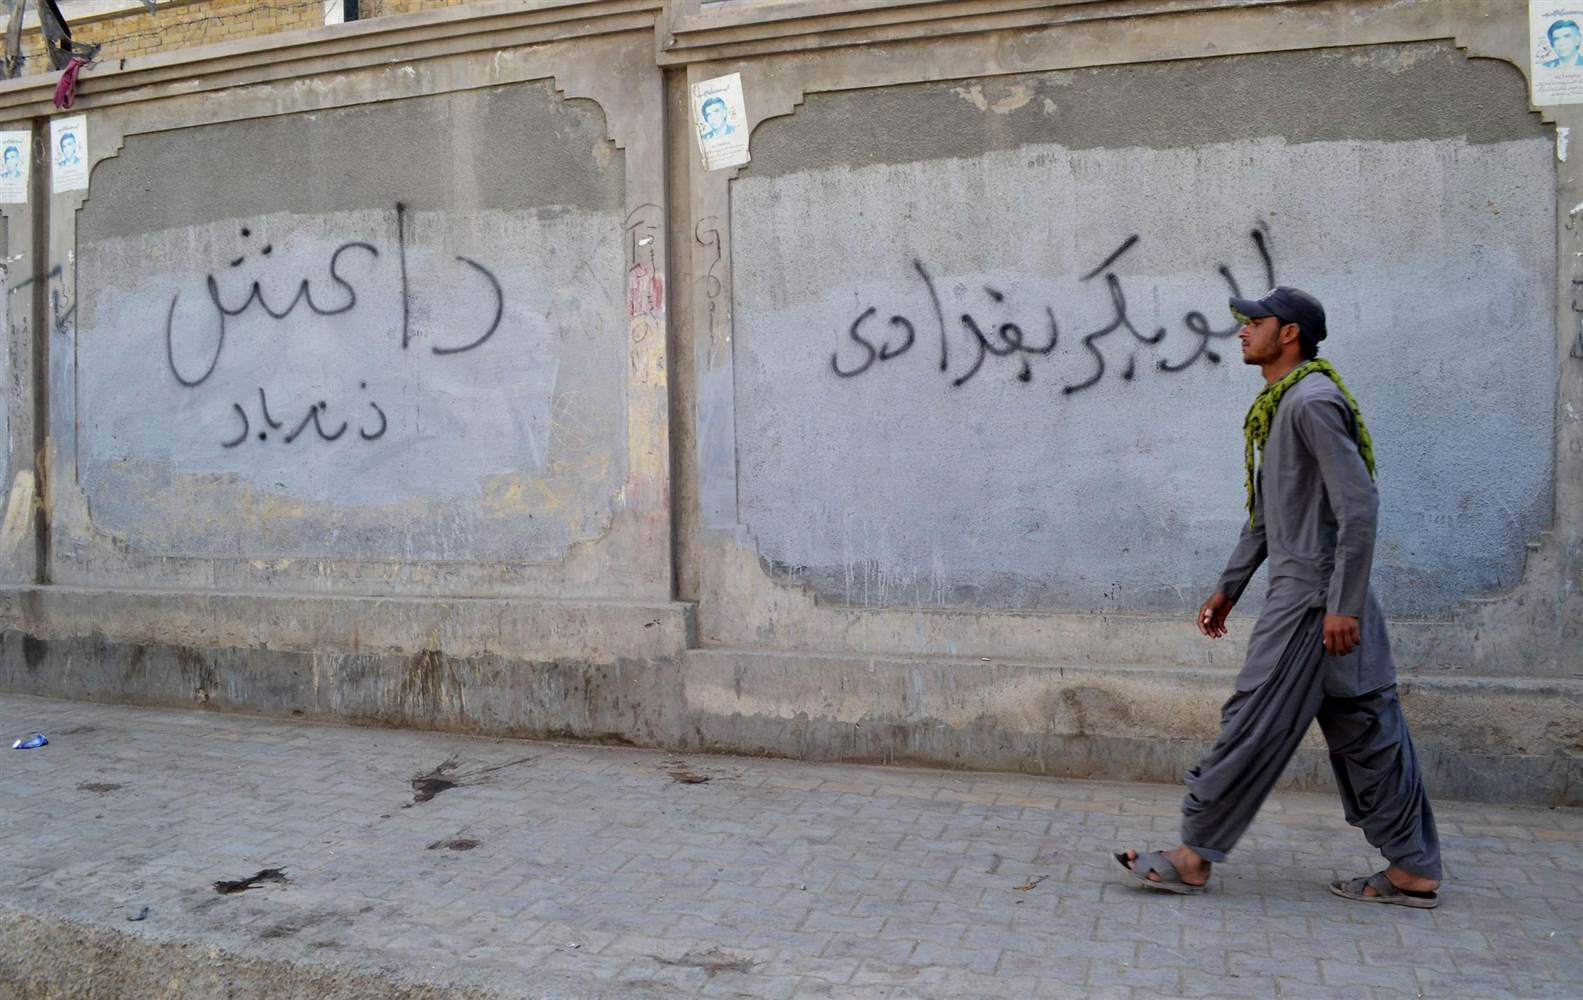 ISIS wall chalking in Quetta